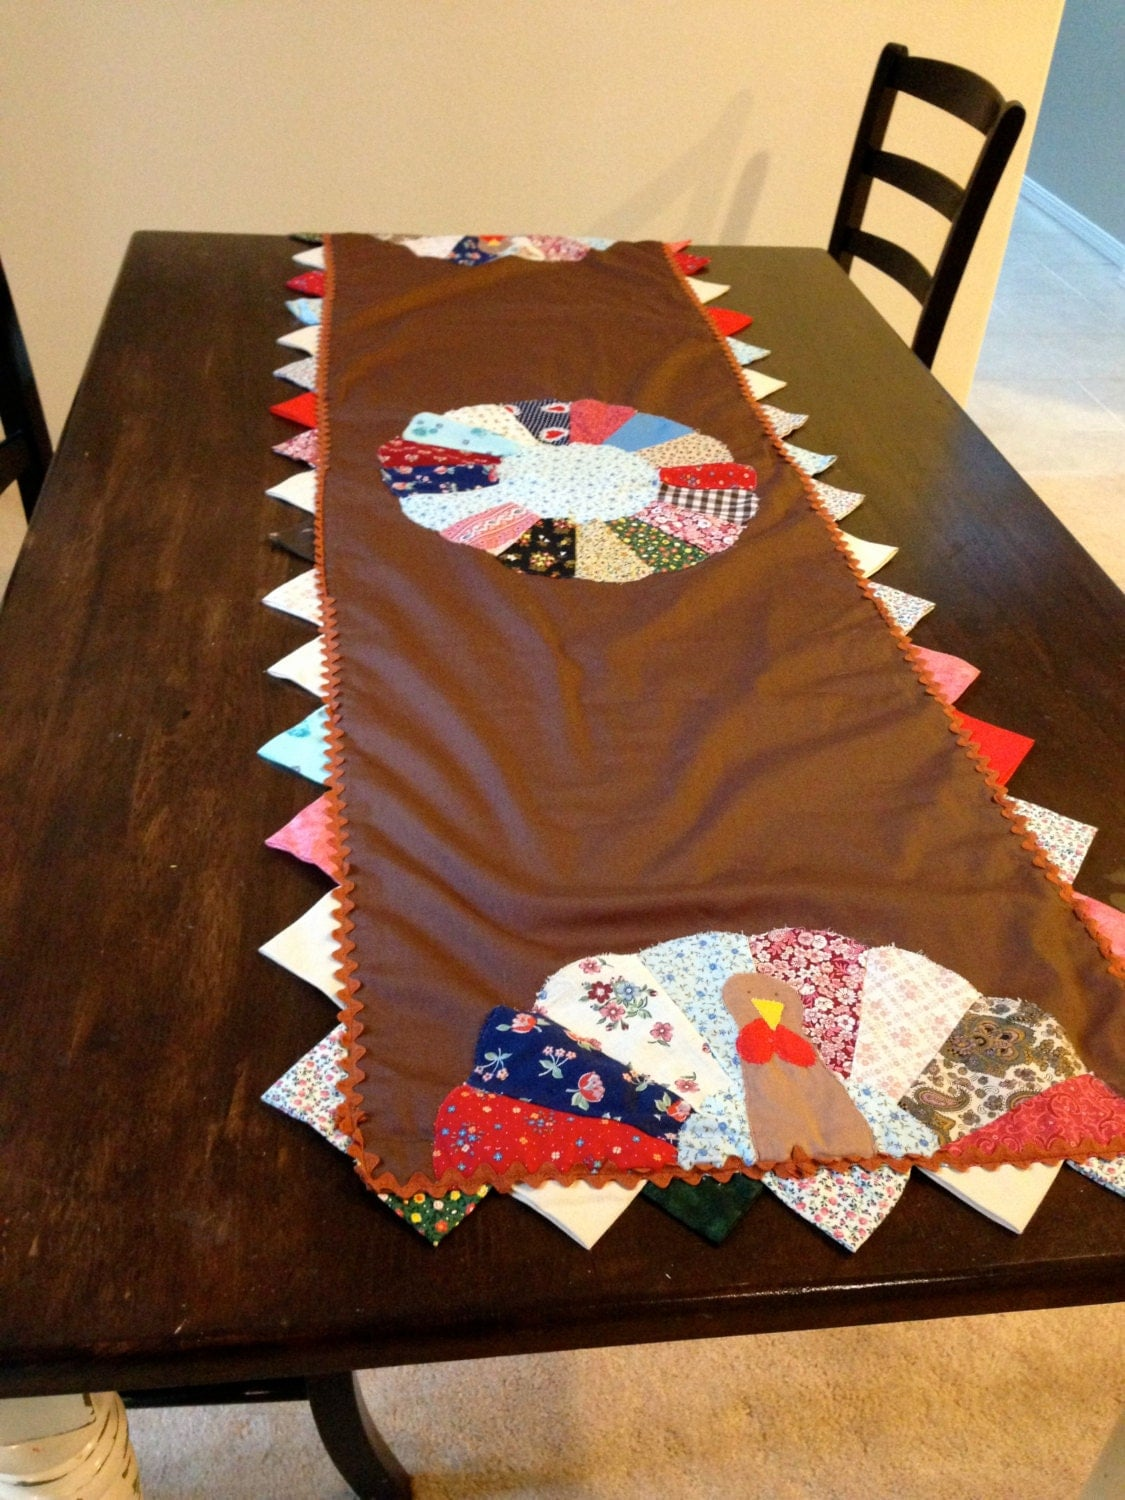 Thanksgiving Quilted Table Runner Patterns : Turkey Quilted table runner for thanksgiving by happykristen